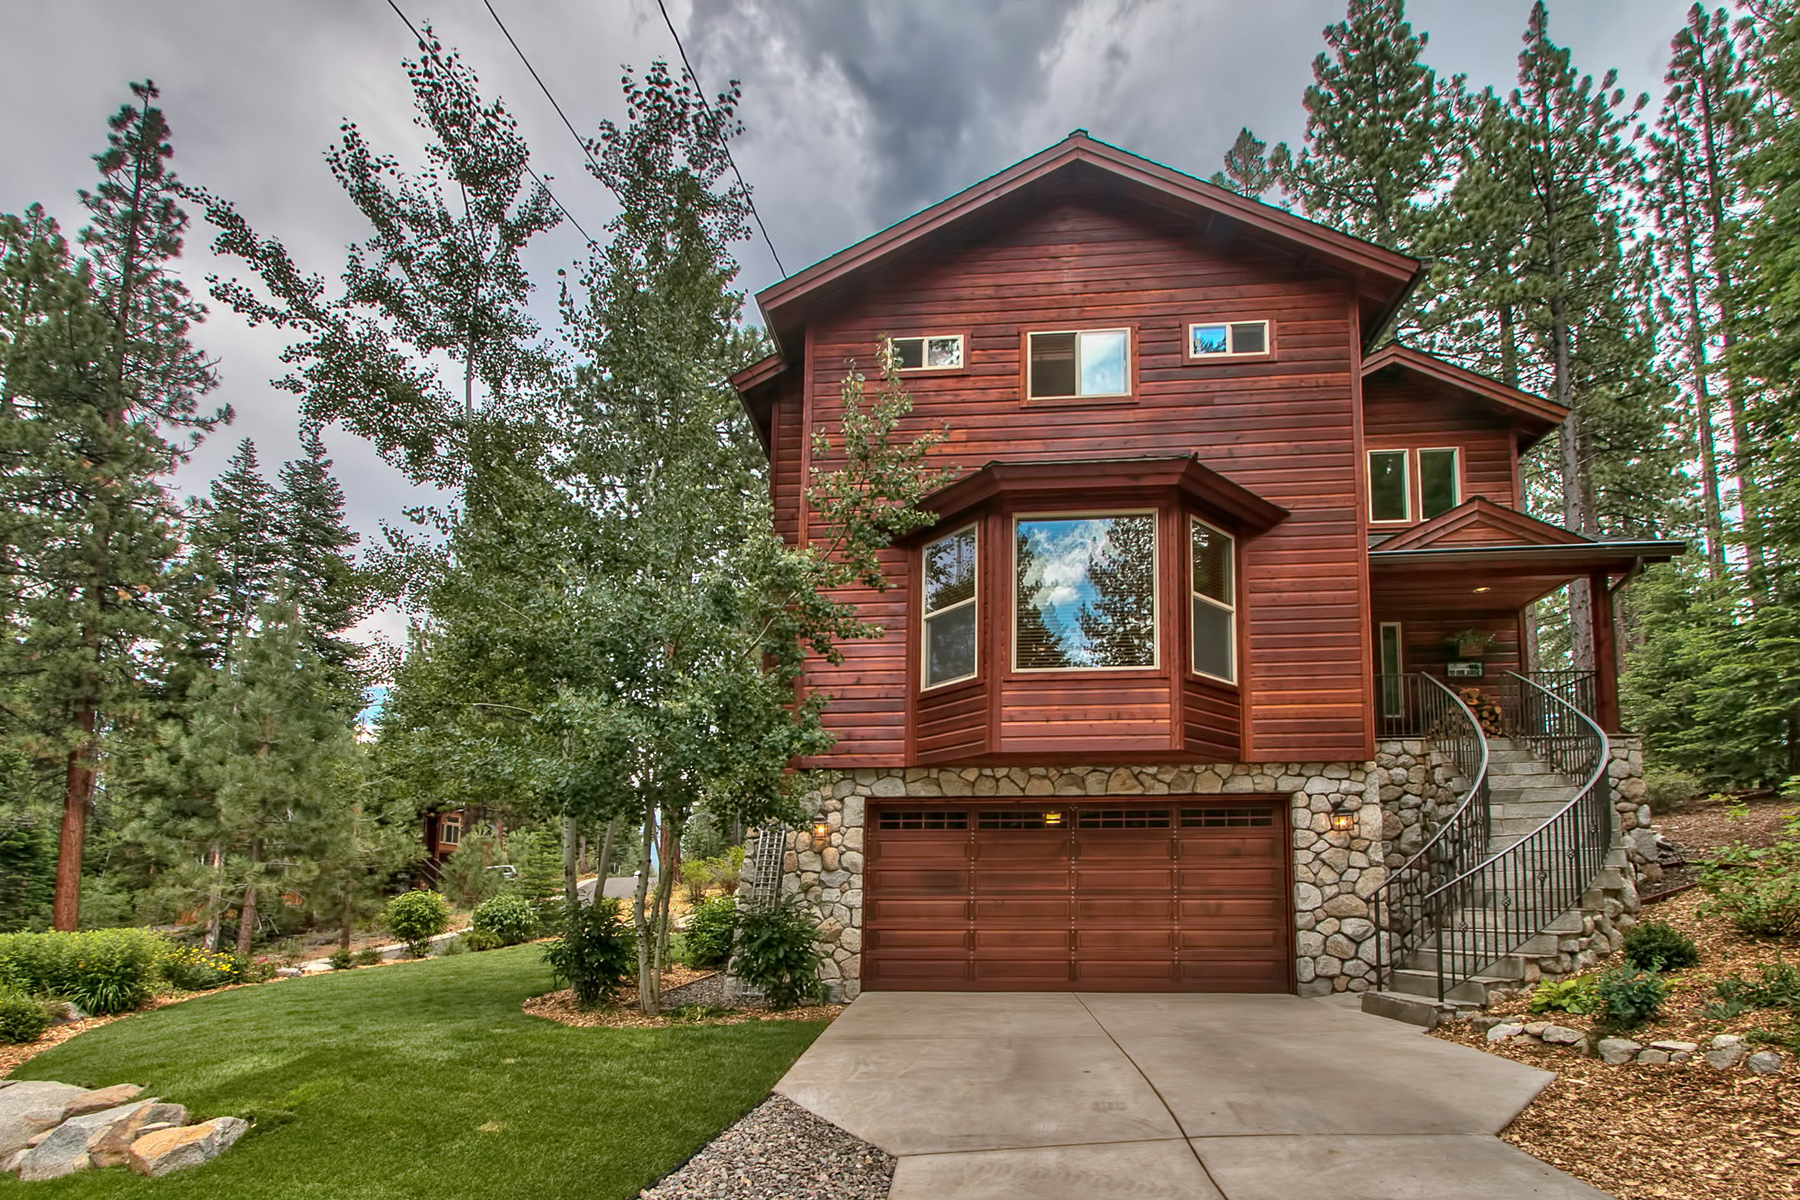 Single Family Home for Active at 3128 Jacarillo Trail South Lake Tahoe, California 96150 United States